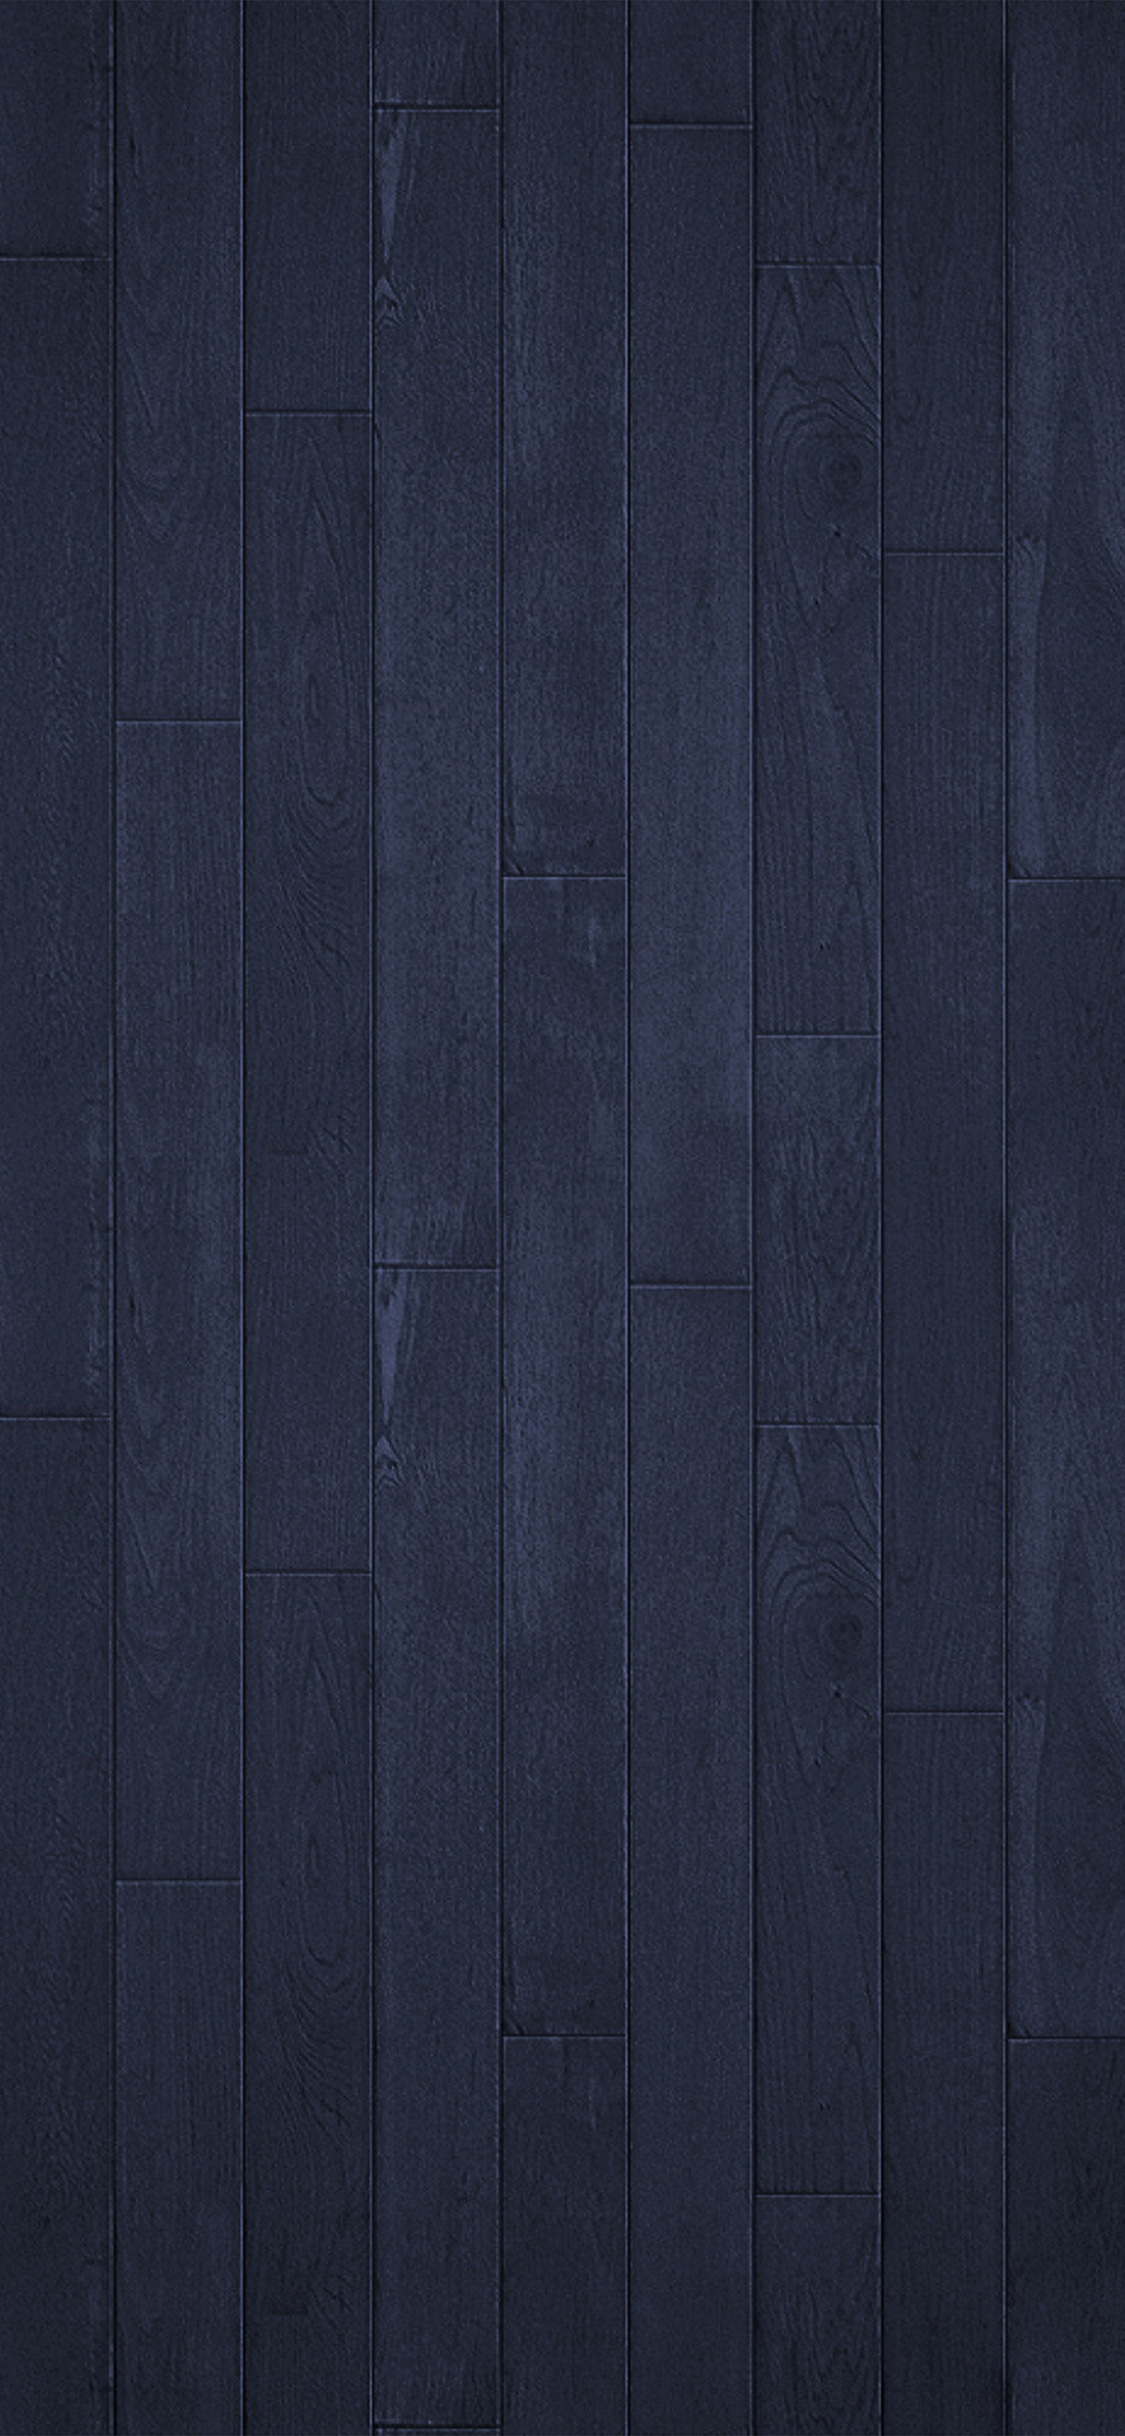 Vt88 Texture Blue Wood Dark Nature Pattern Wallpaper